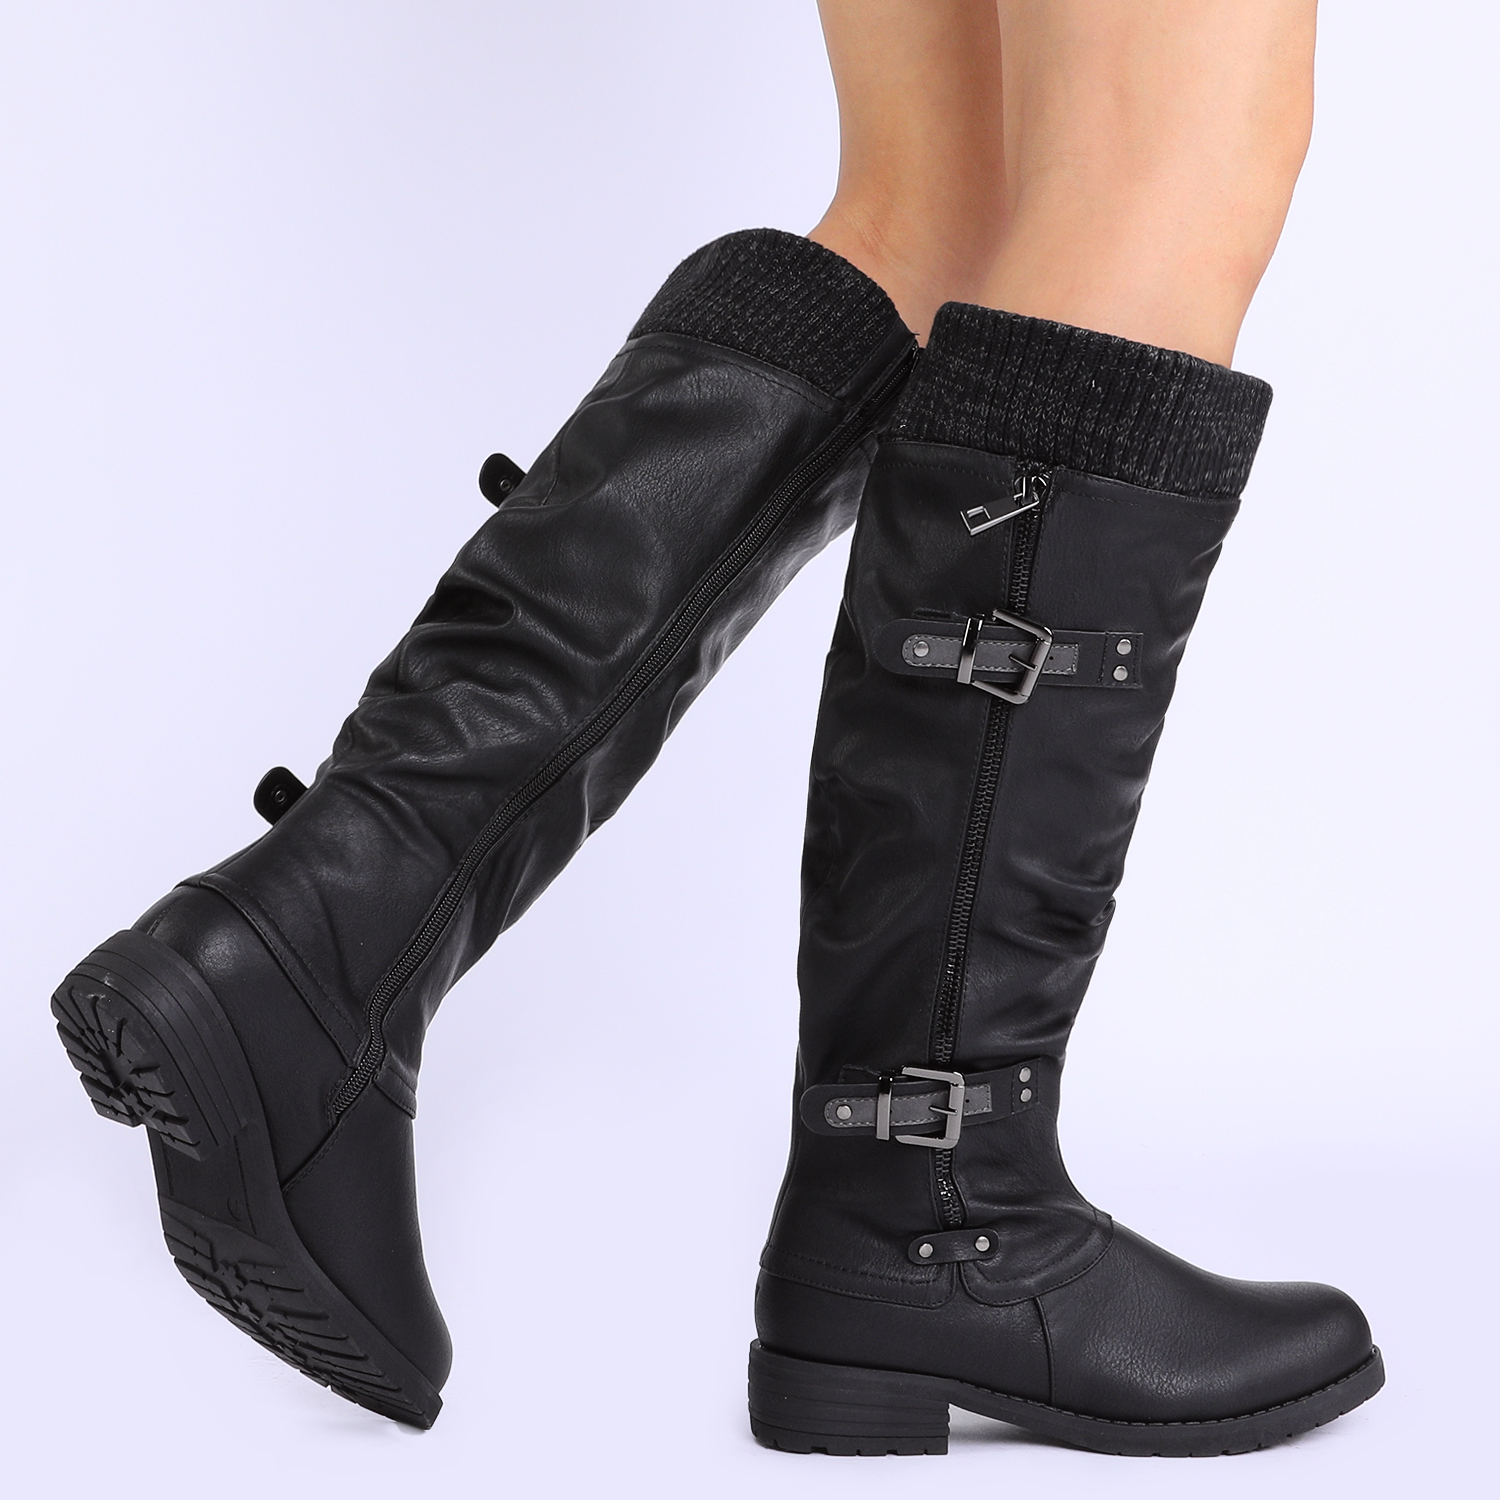 DREAM-PAIRS-Womens-DEPP-Cowgirl-Soft-PU-Leather-Combat-Knee-High-Riding-Boots thumbnail 10